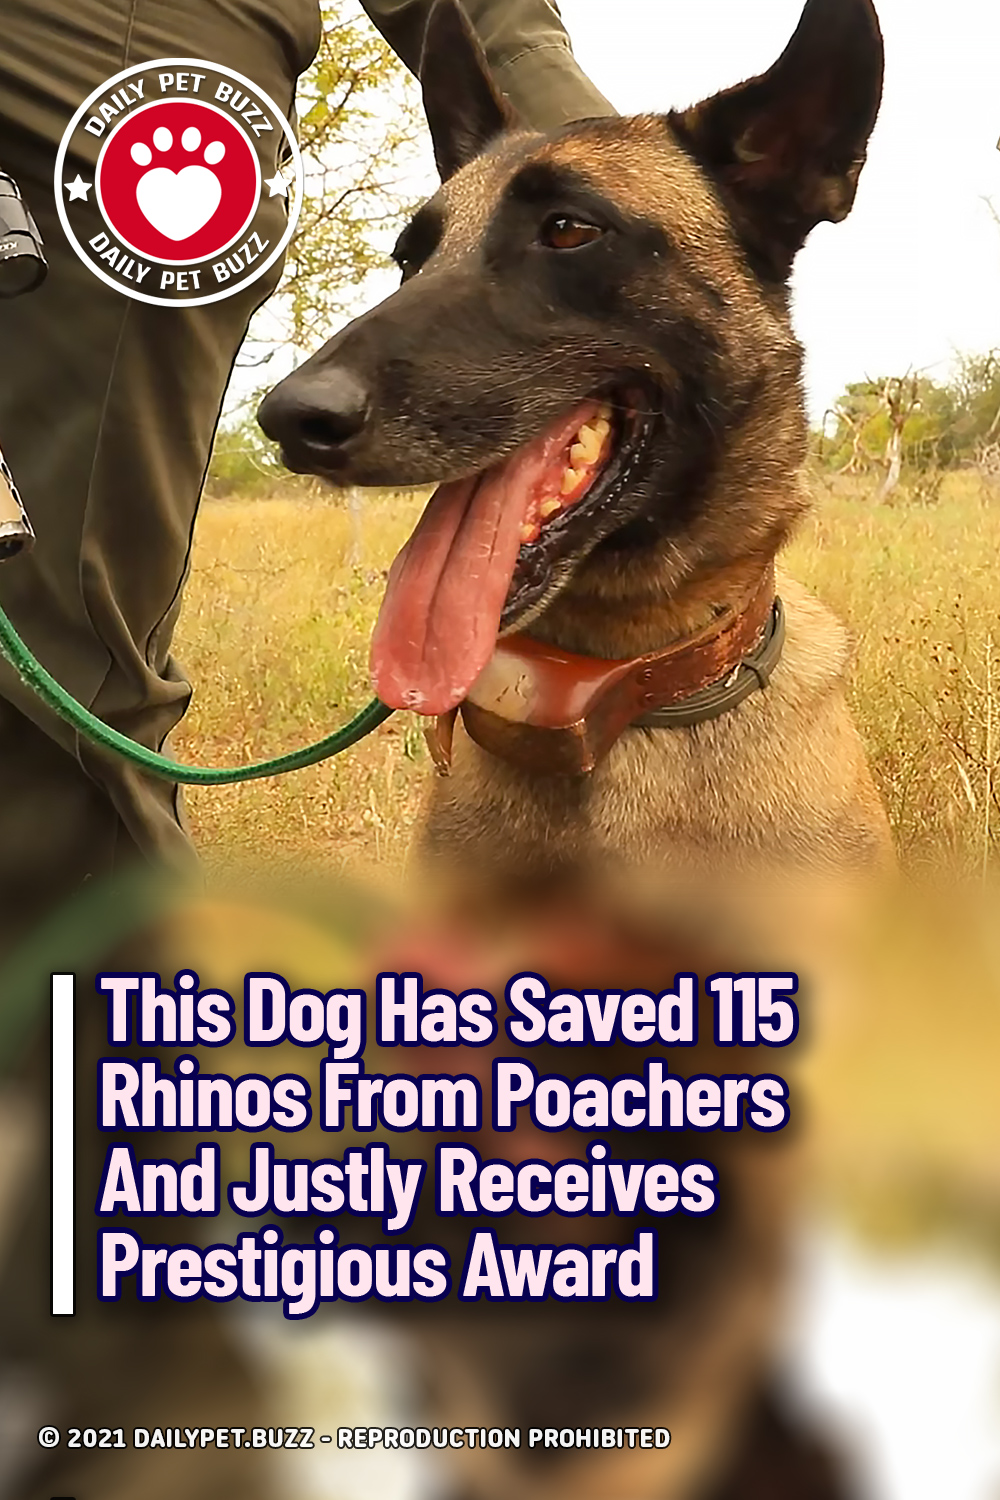 This Dog Has Saved 115 Rhinos From Poachers And Justly Receives Prestigious Award